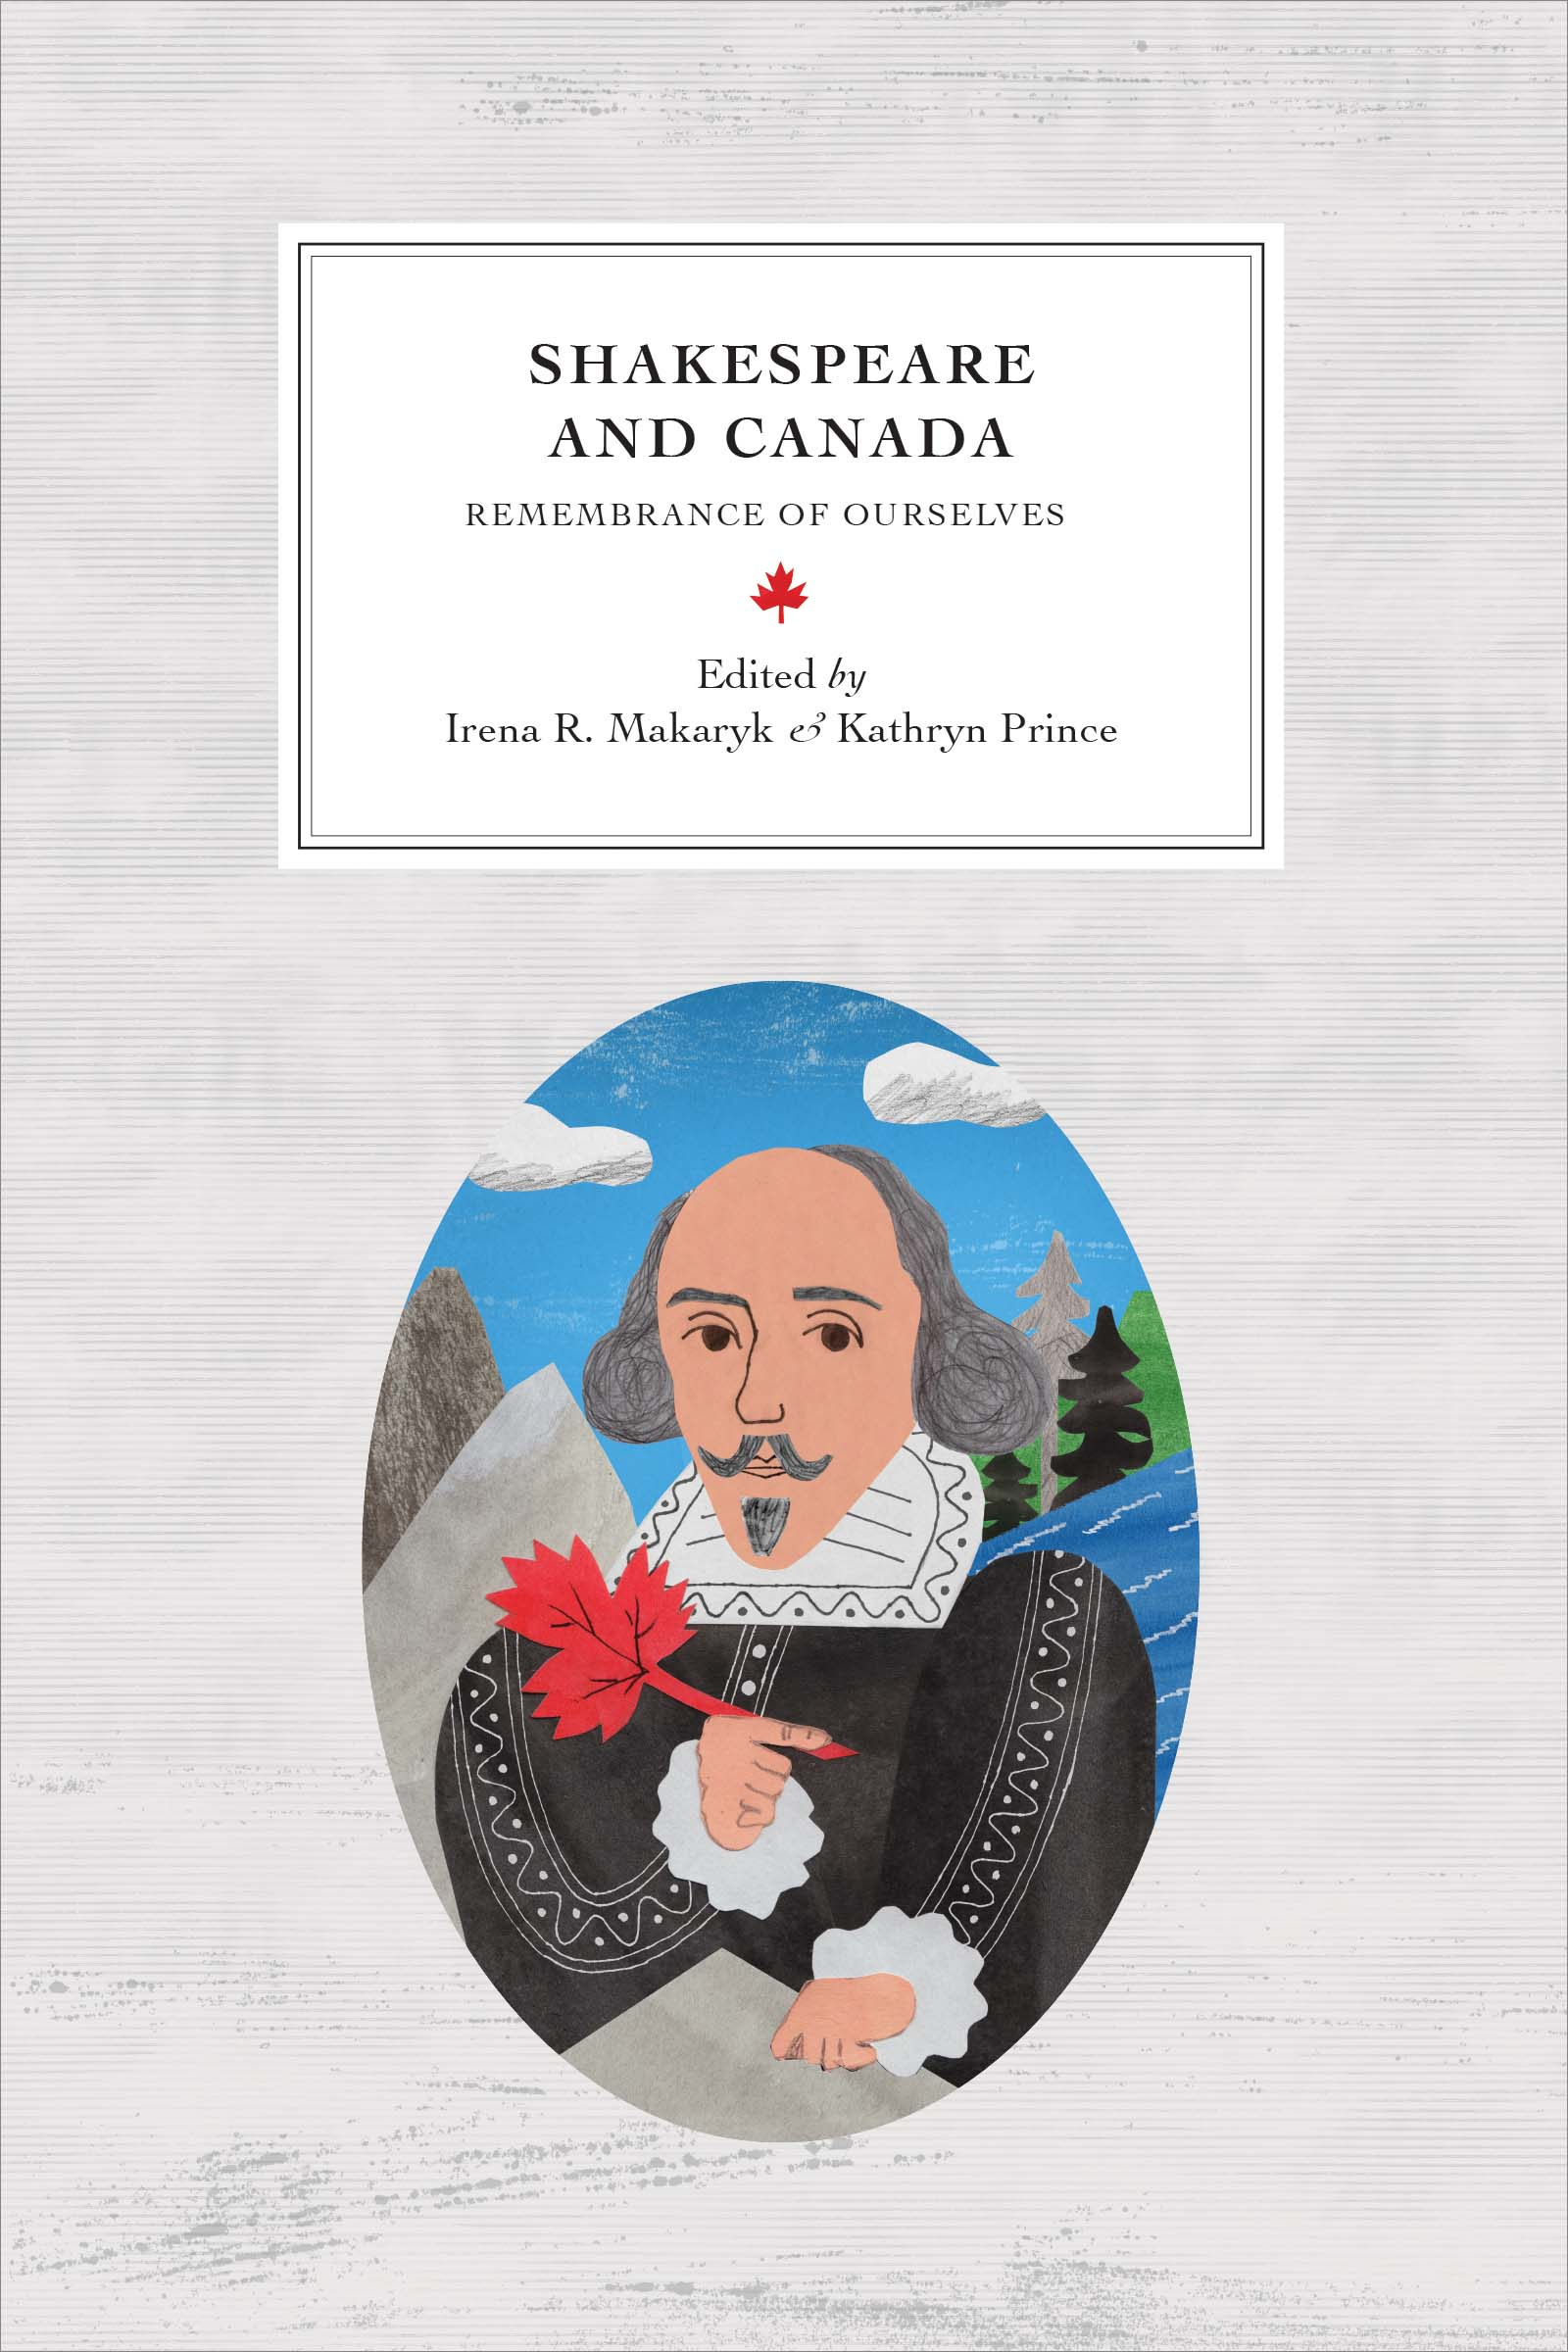 Shakespeare and Canada